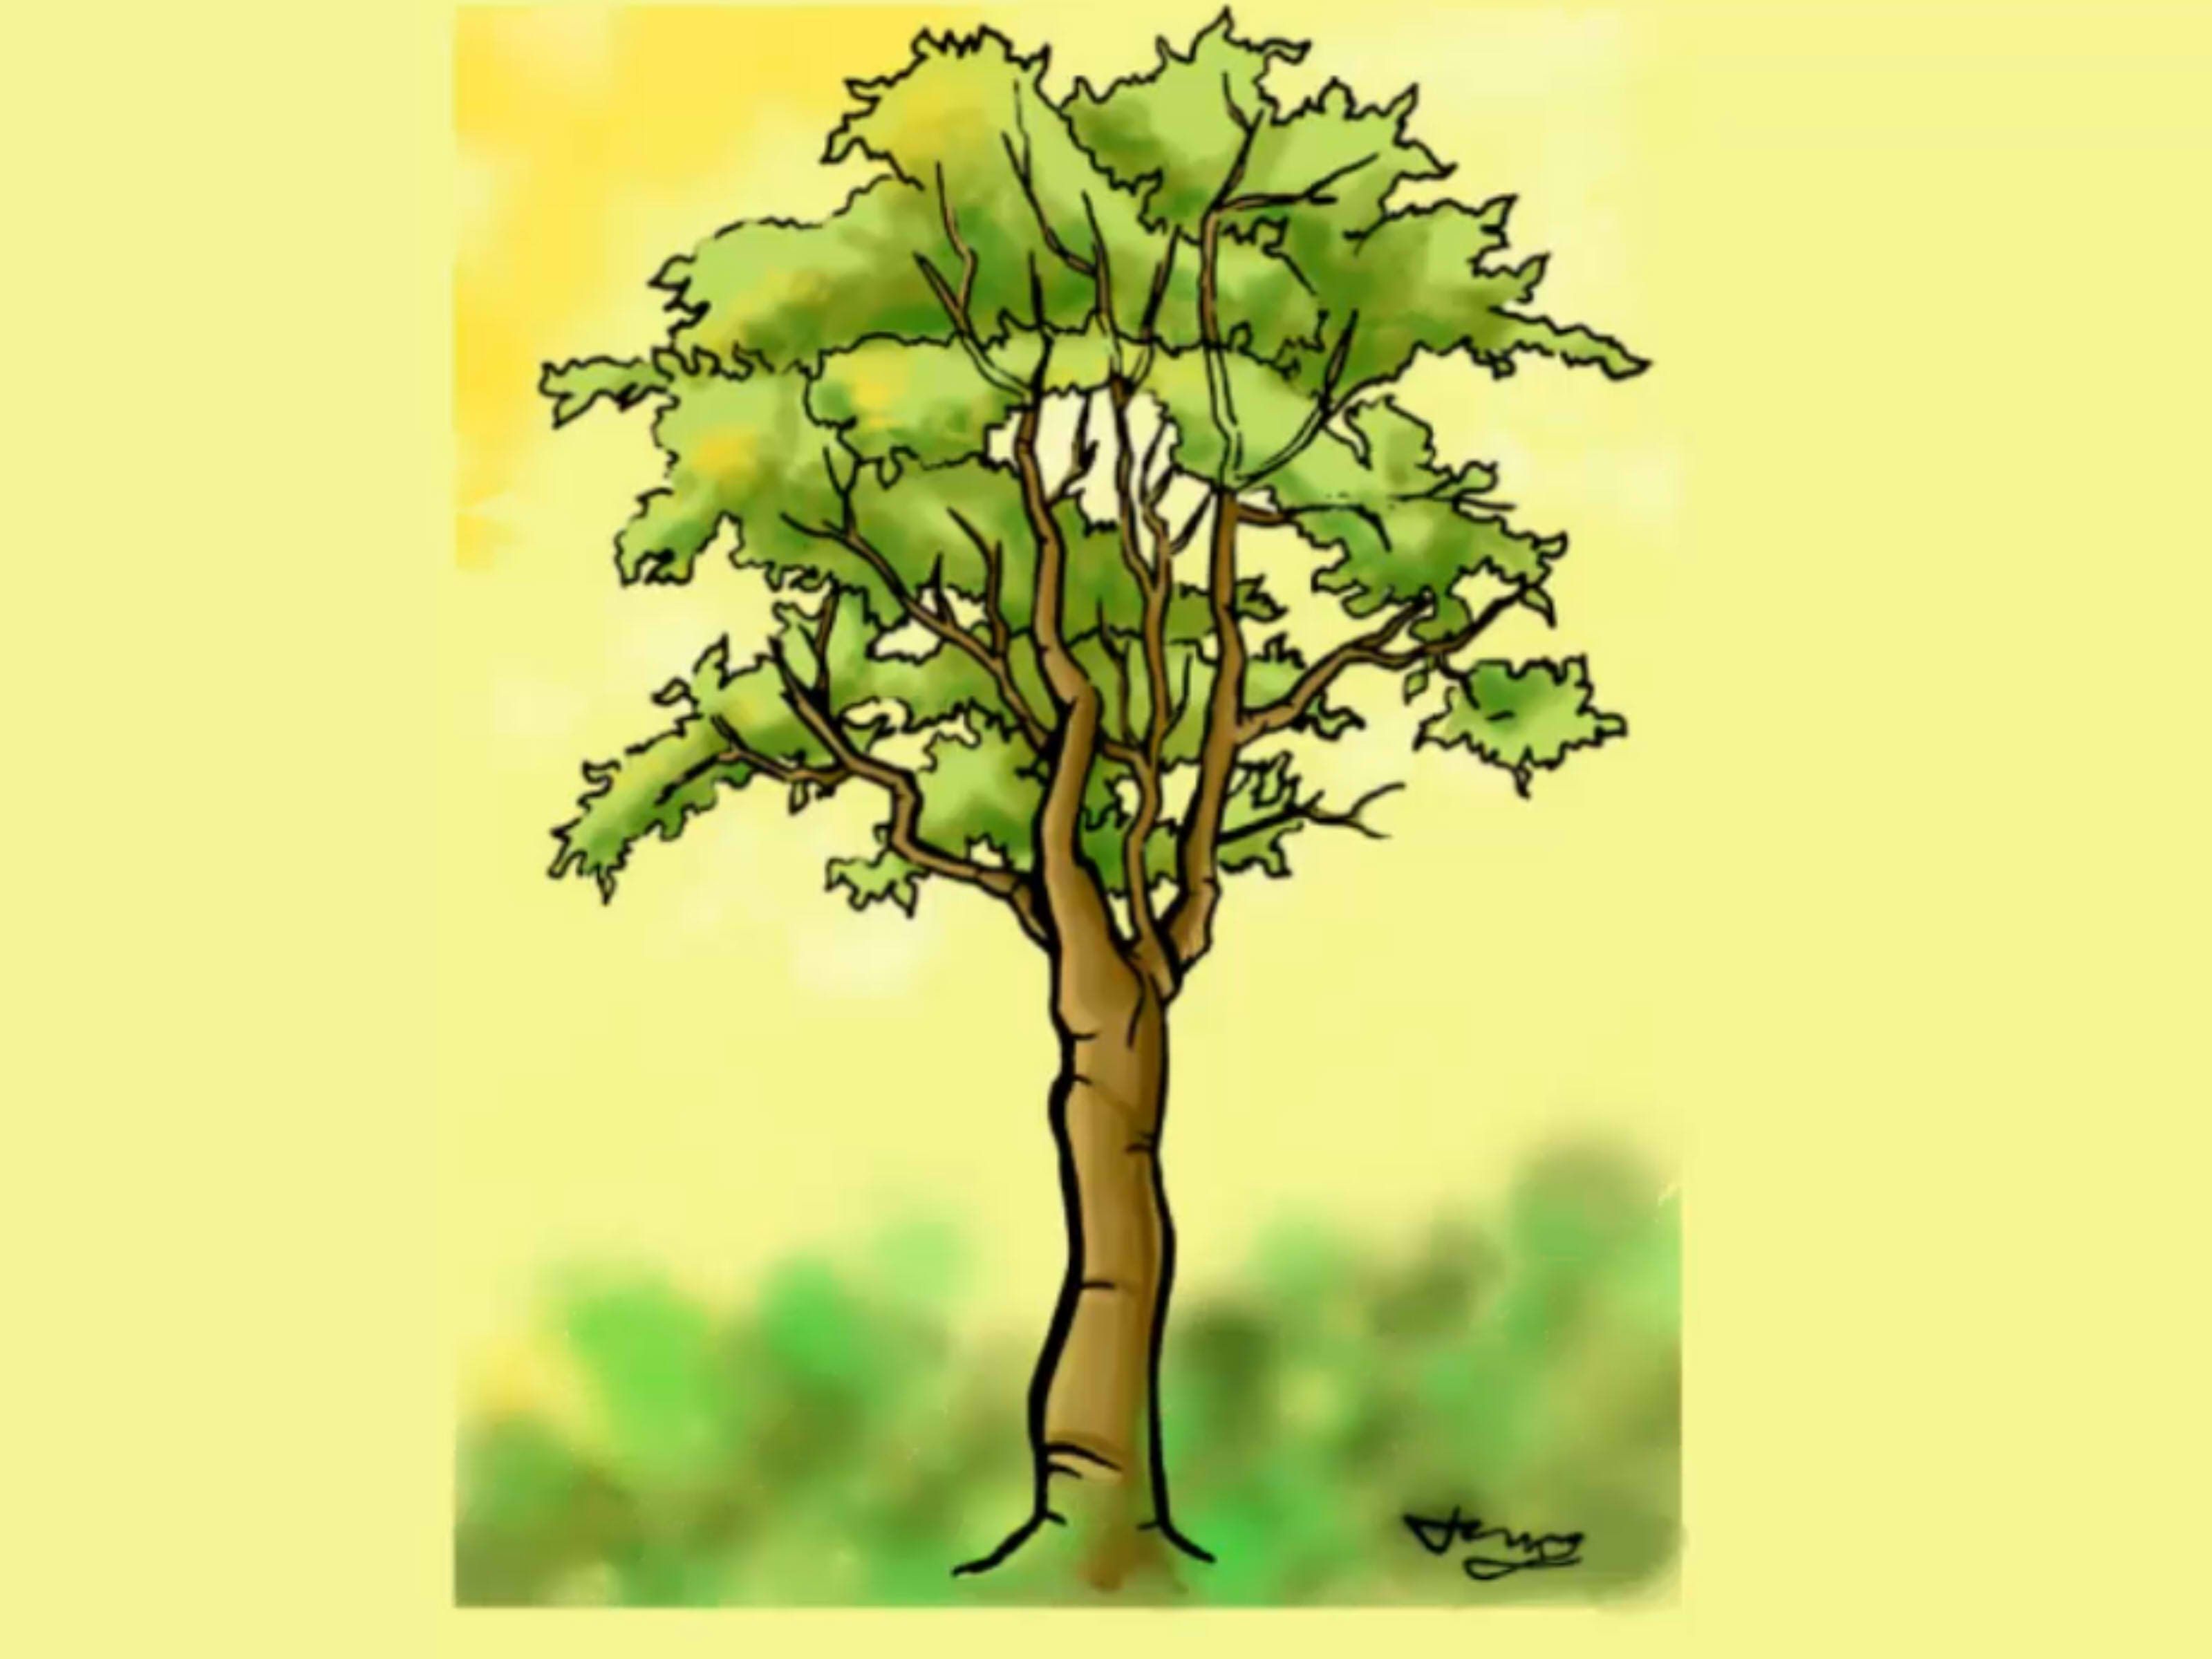 Tree Image Drawing at GetDrawings.com | Free for personal use Tree ...